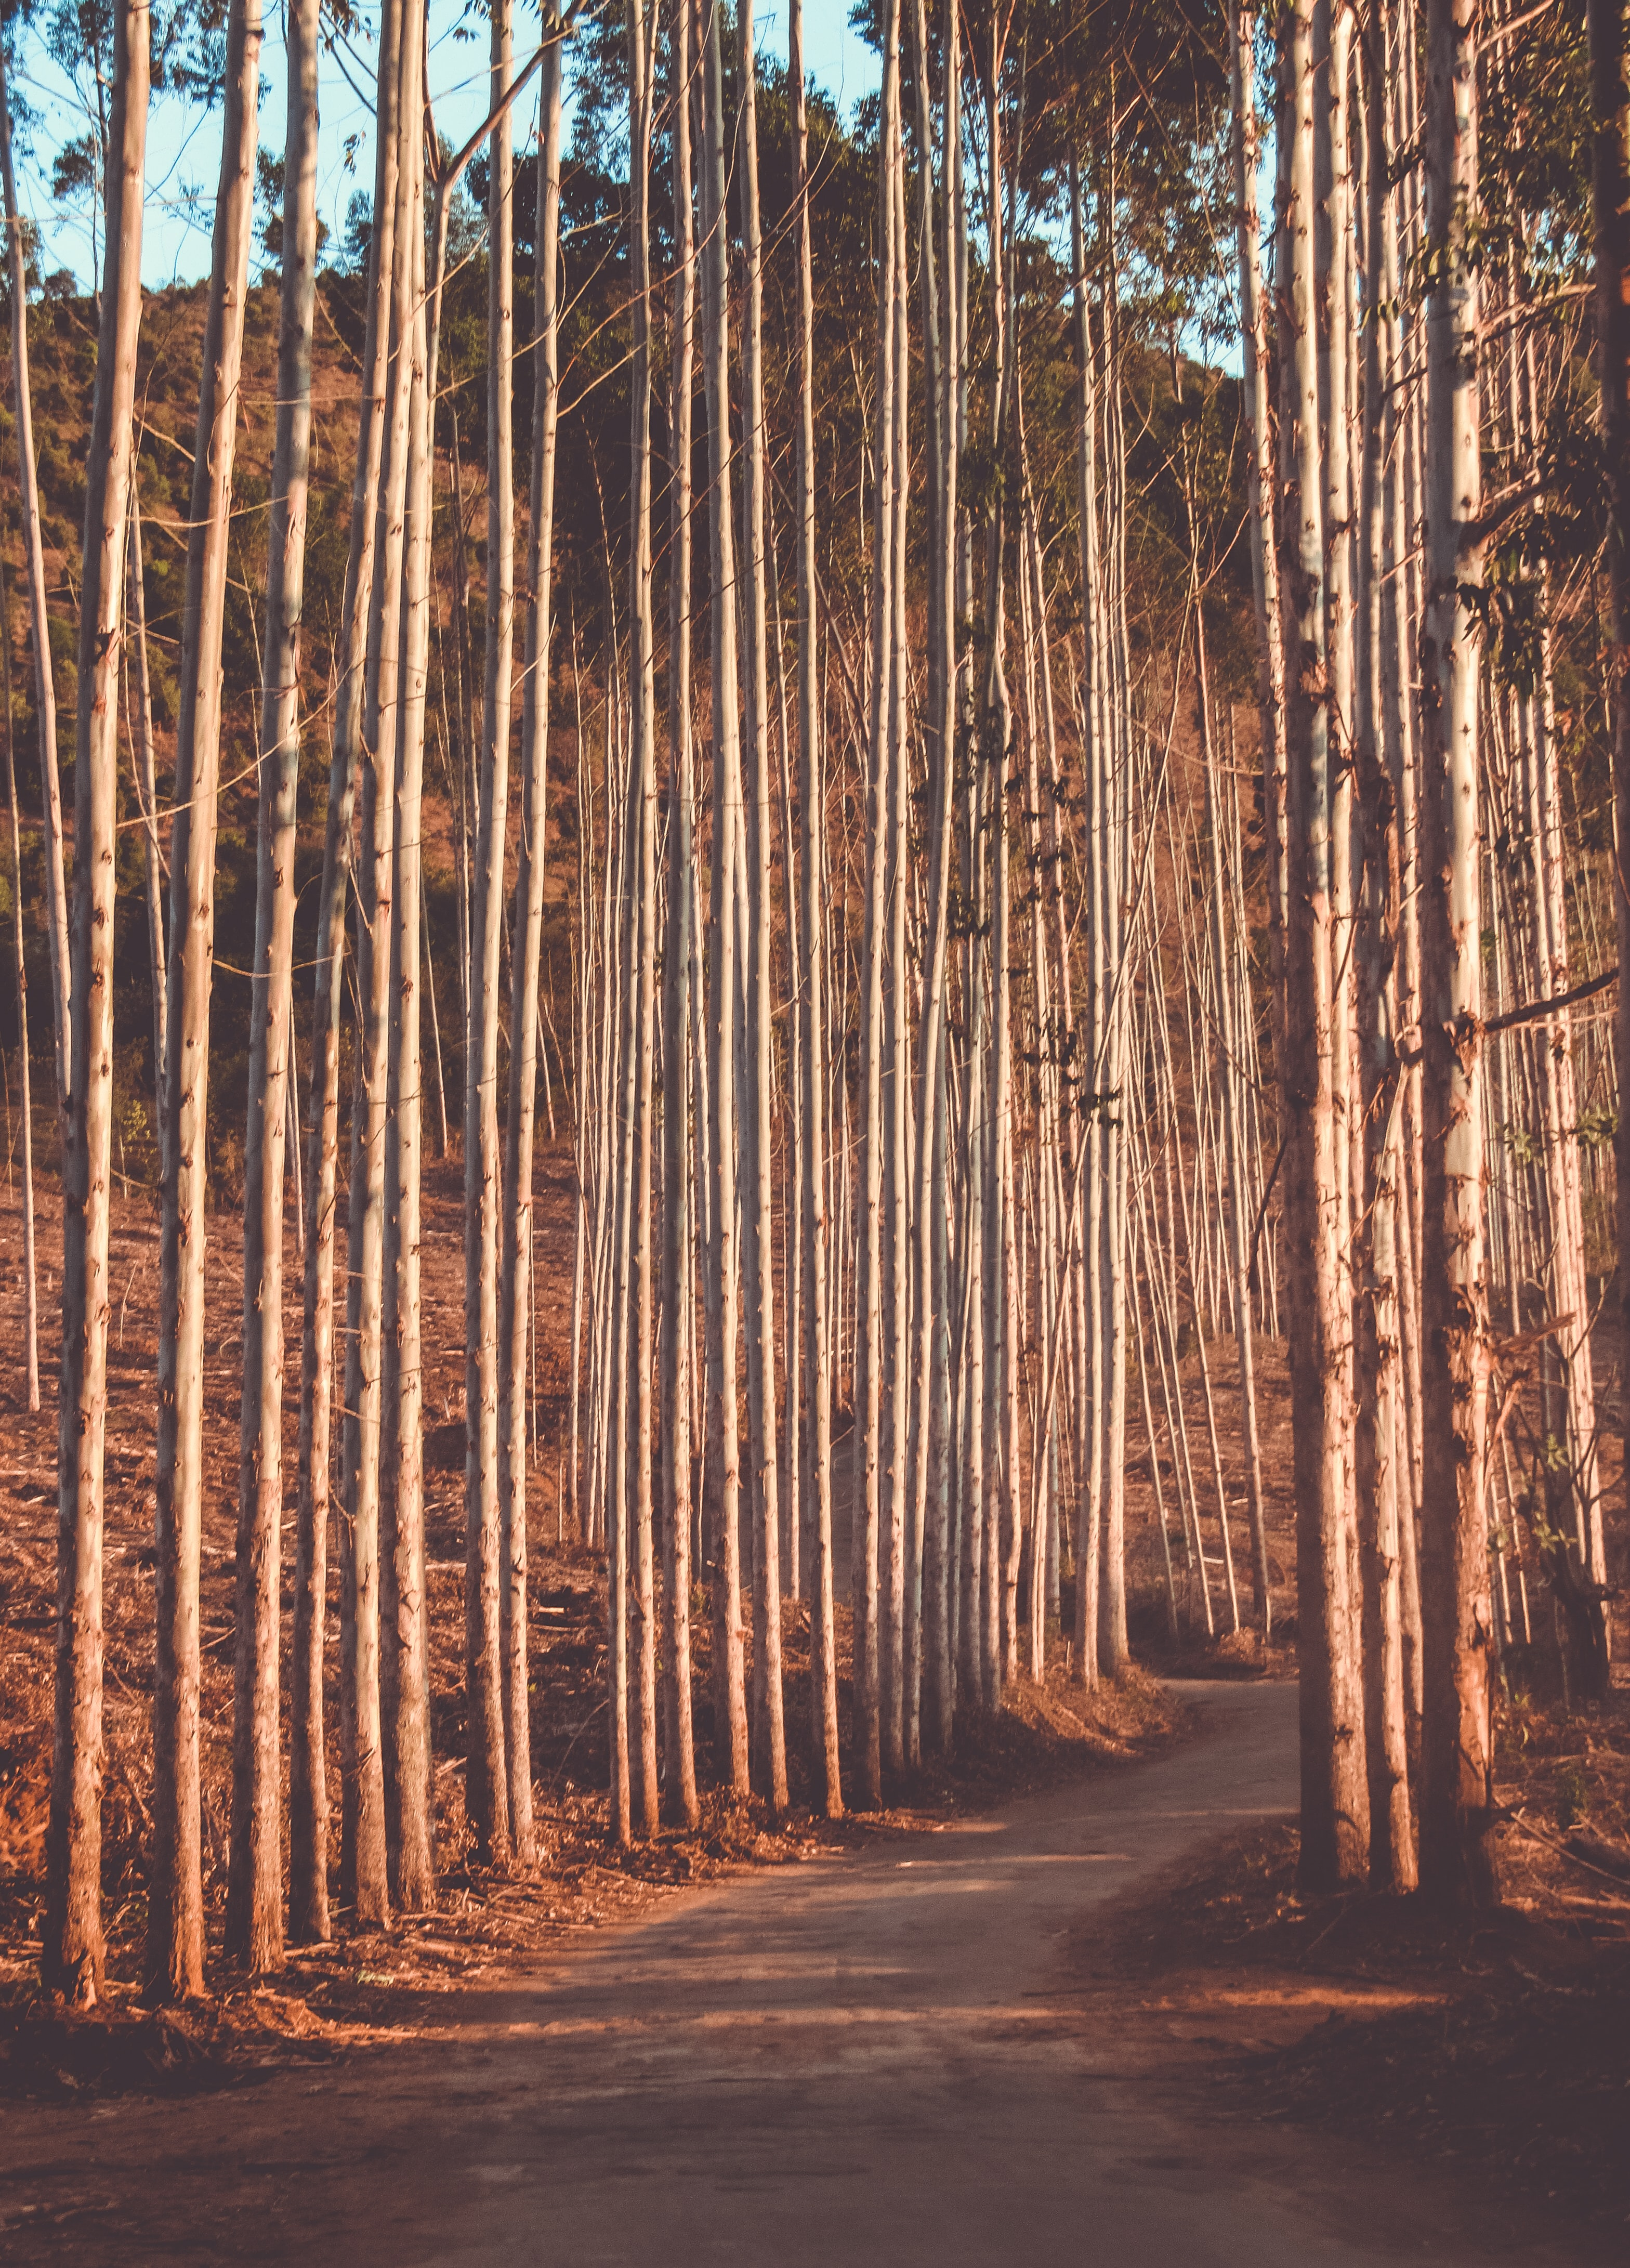 pathway between tall trees during daytime